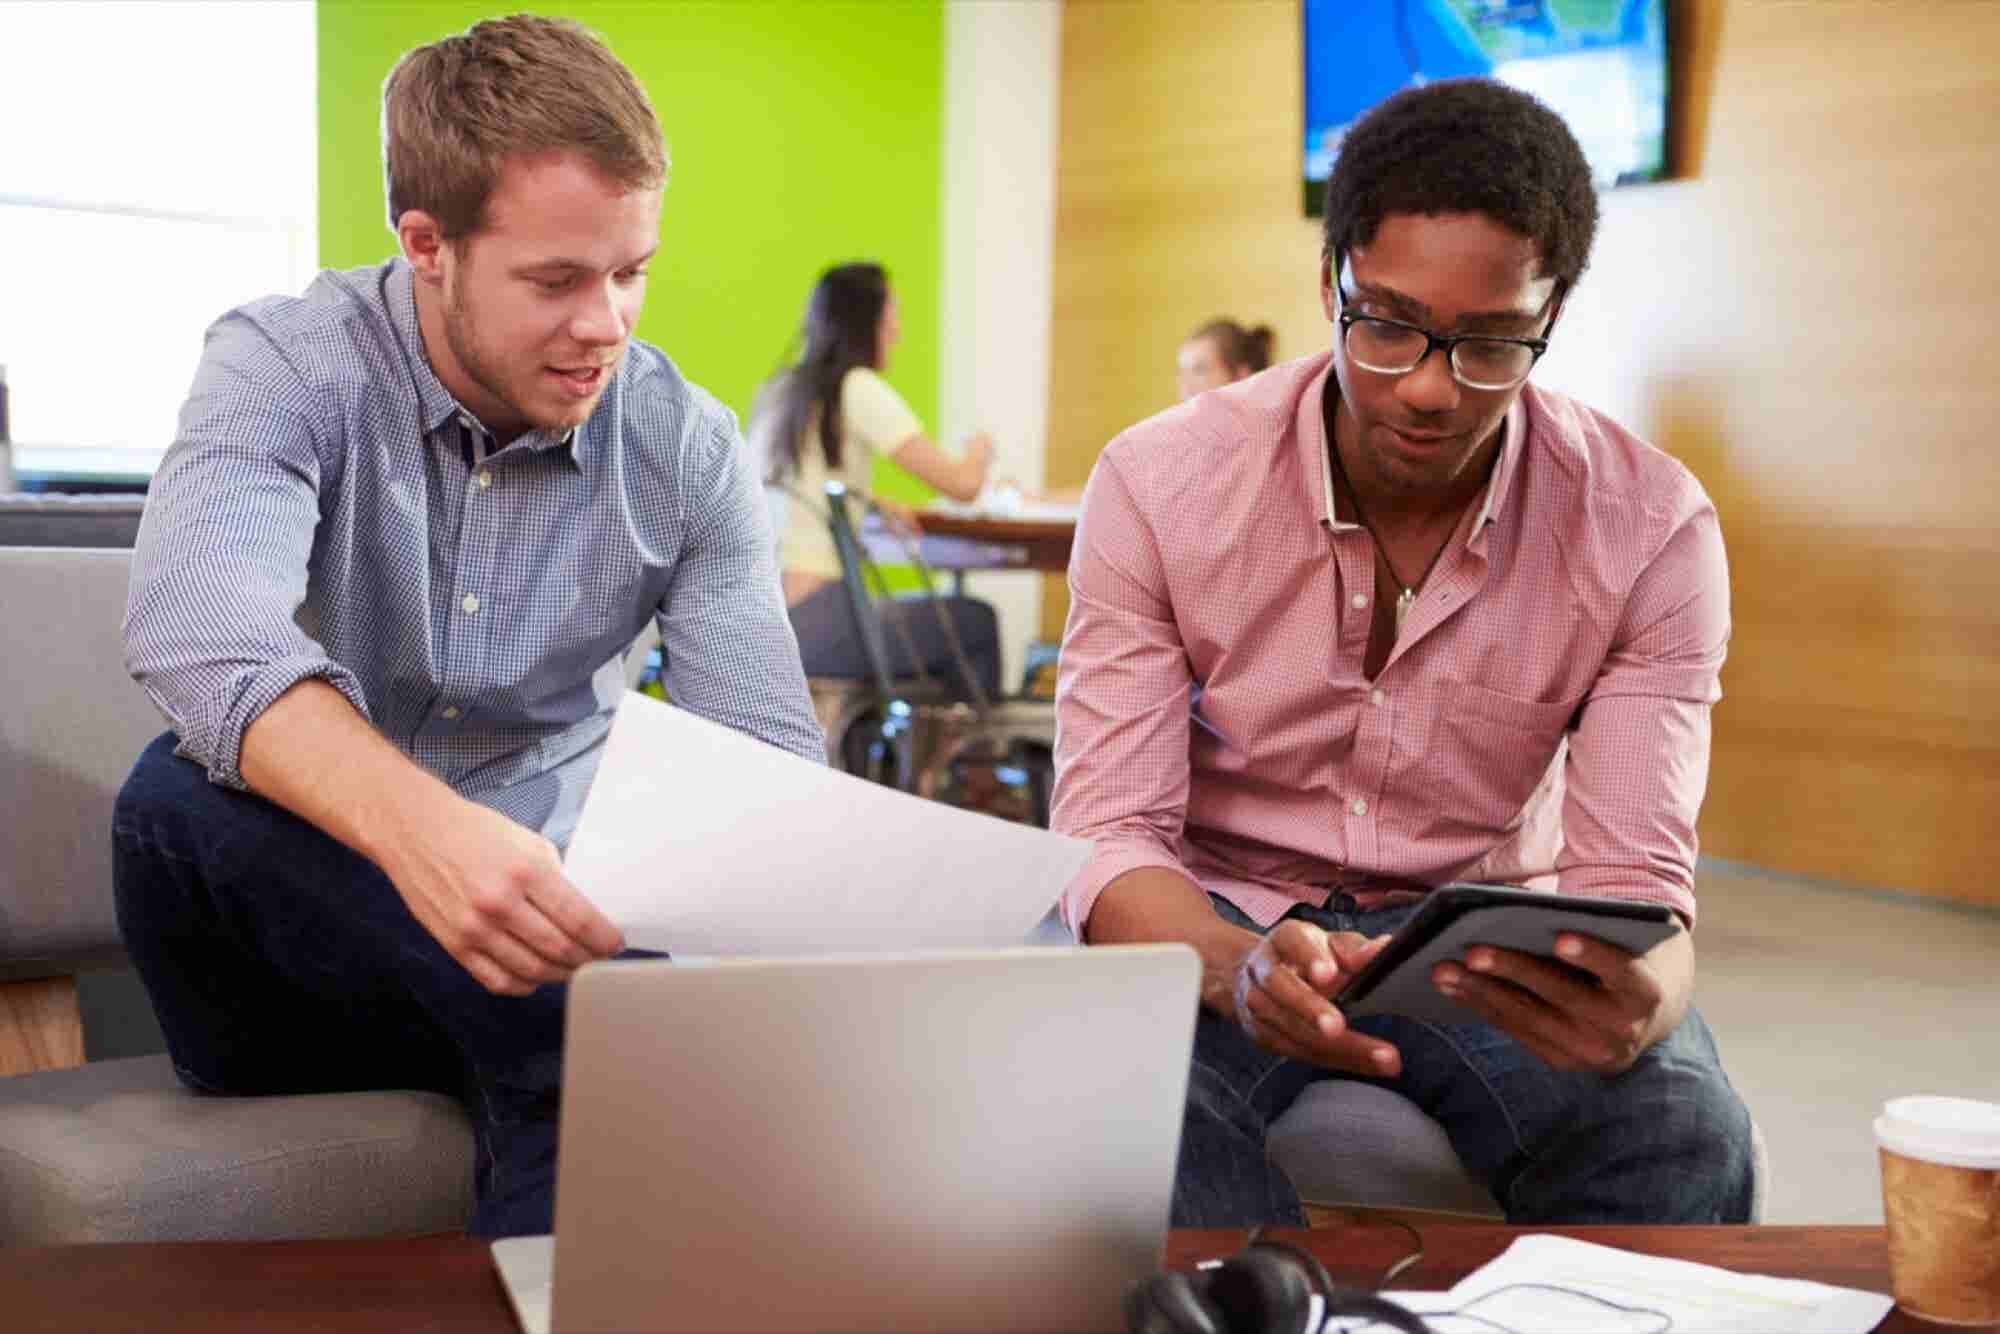 8 ideal workplace practices for entrepreneurs to follow